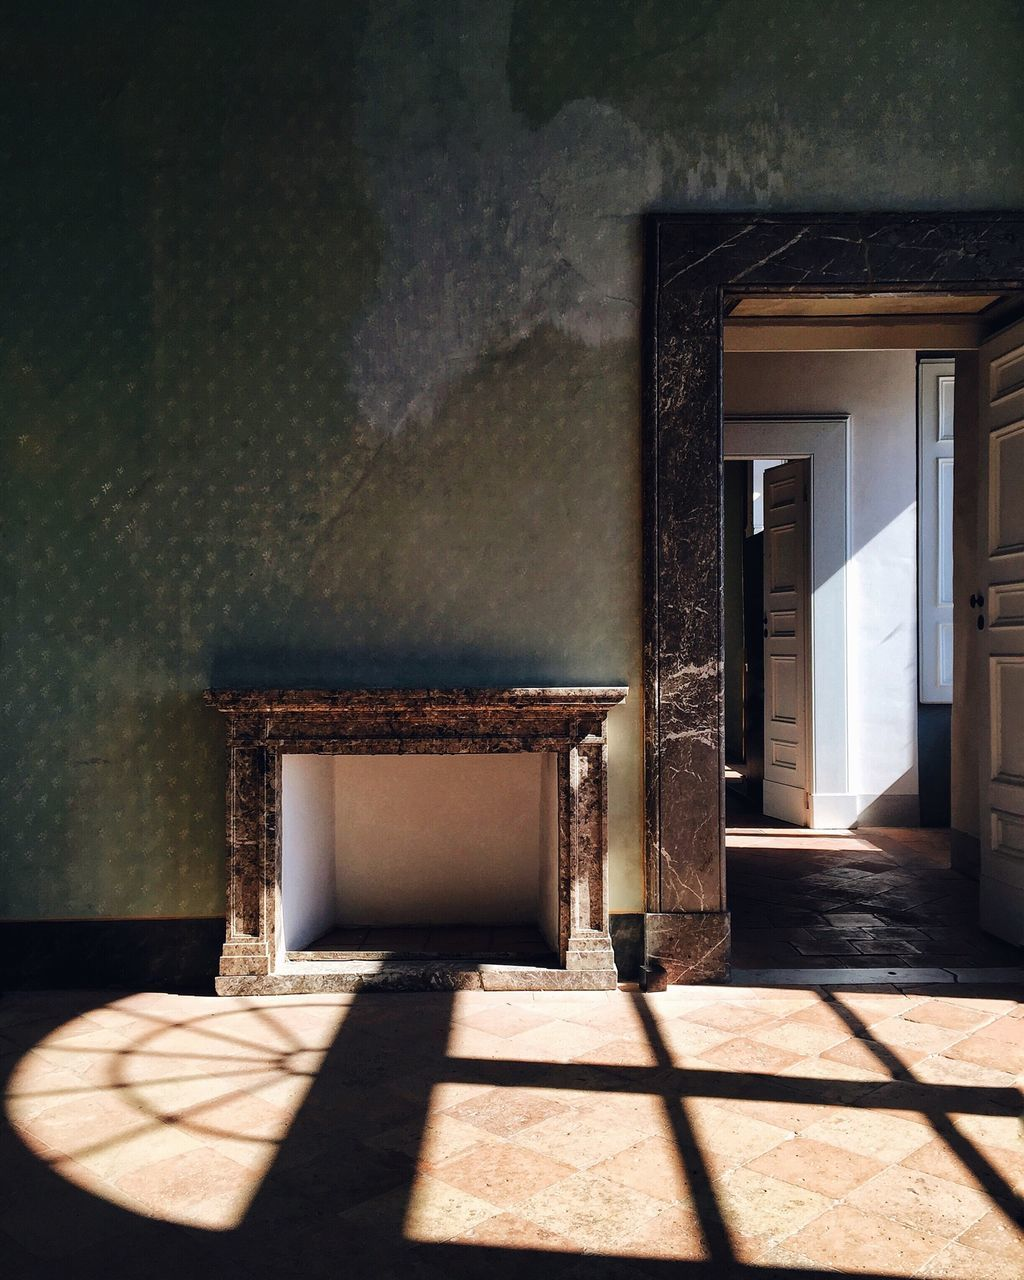 Shadow Of Window On Tiled Floor At Home